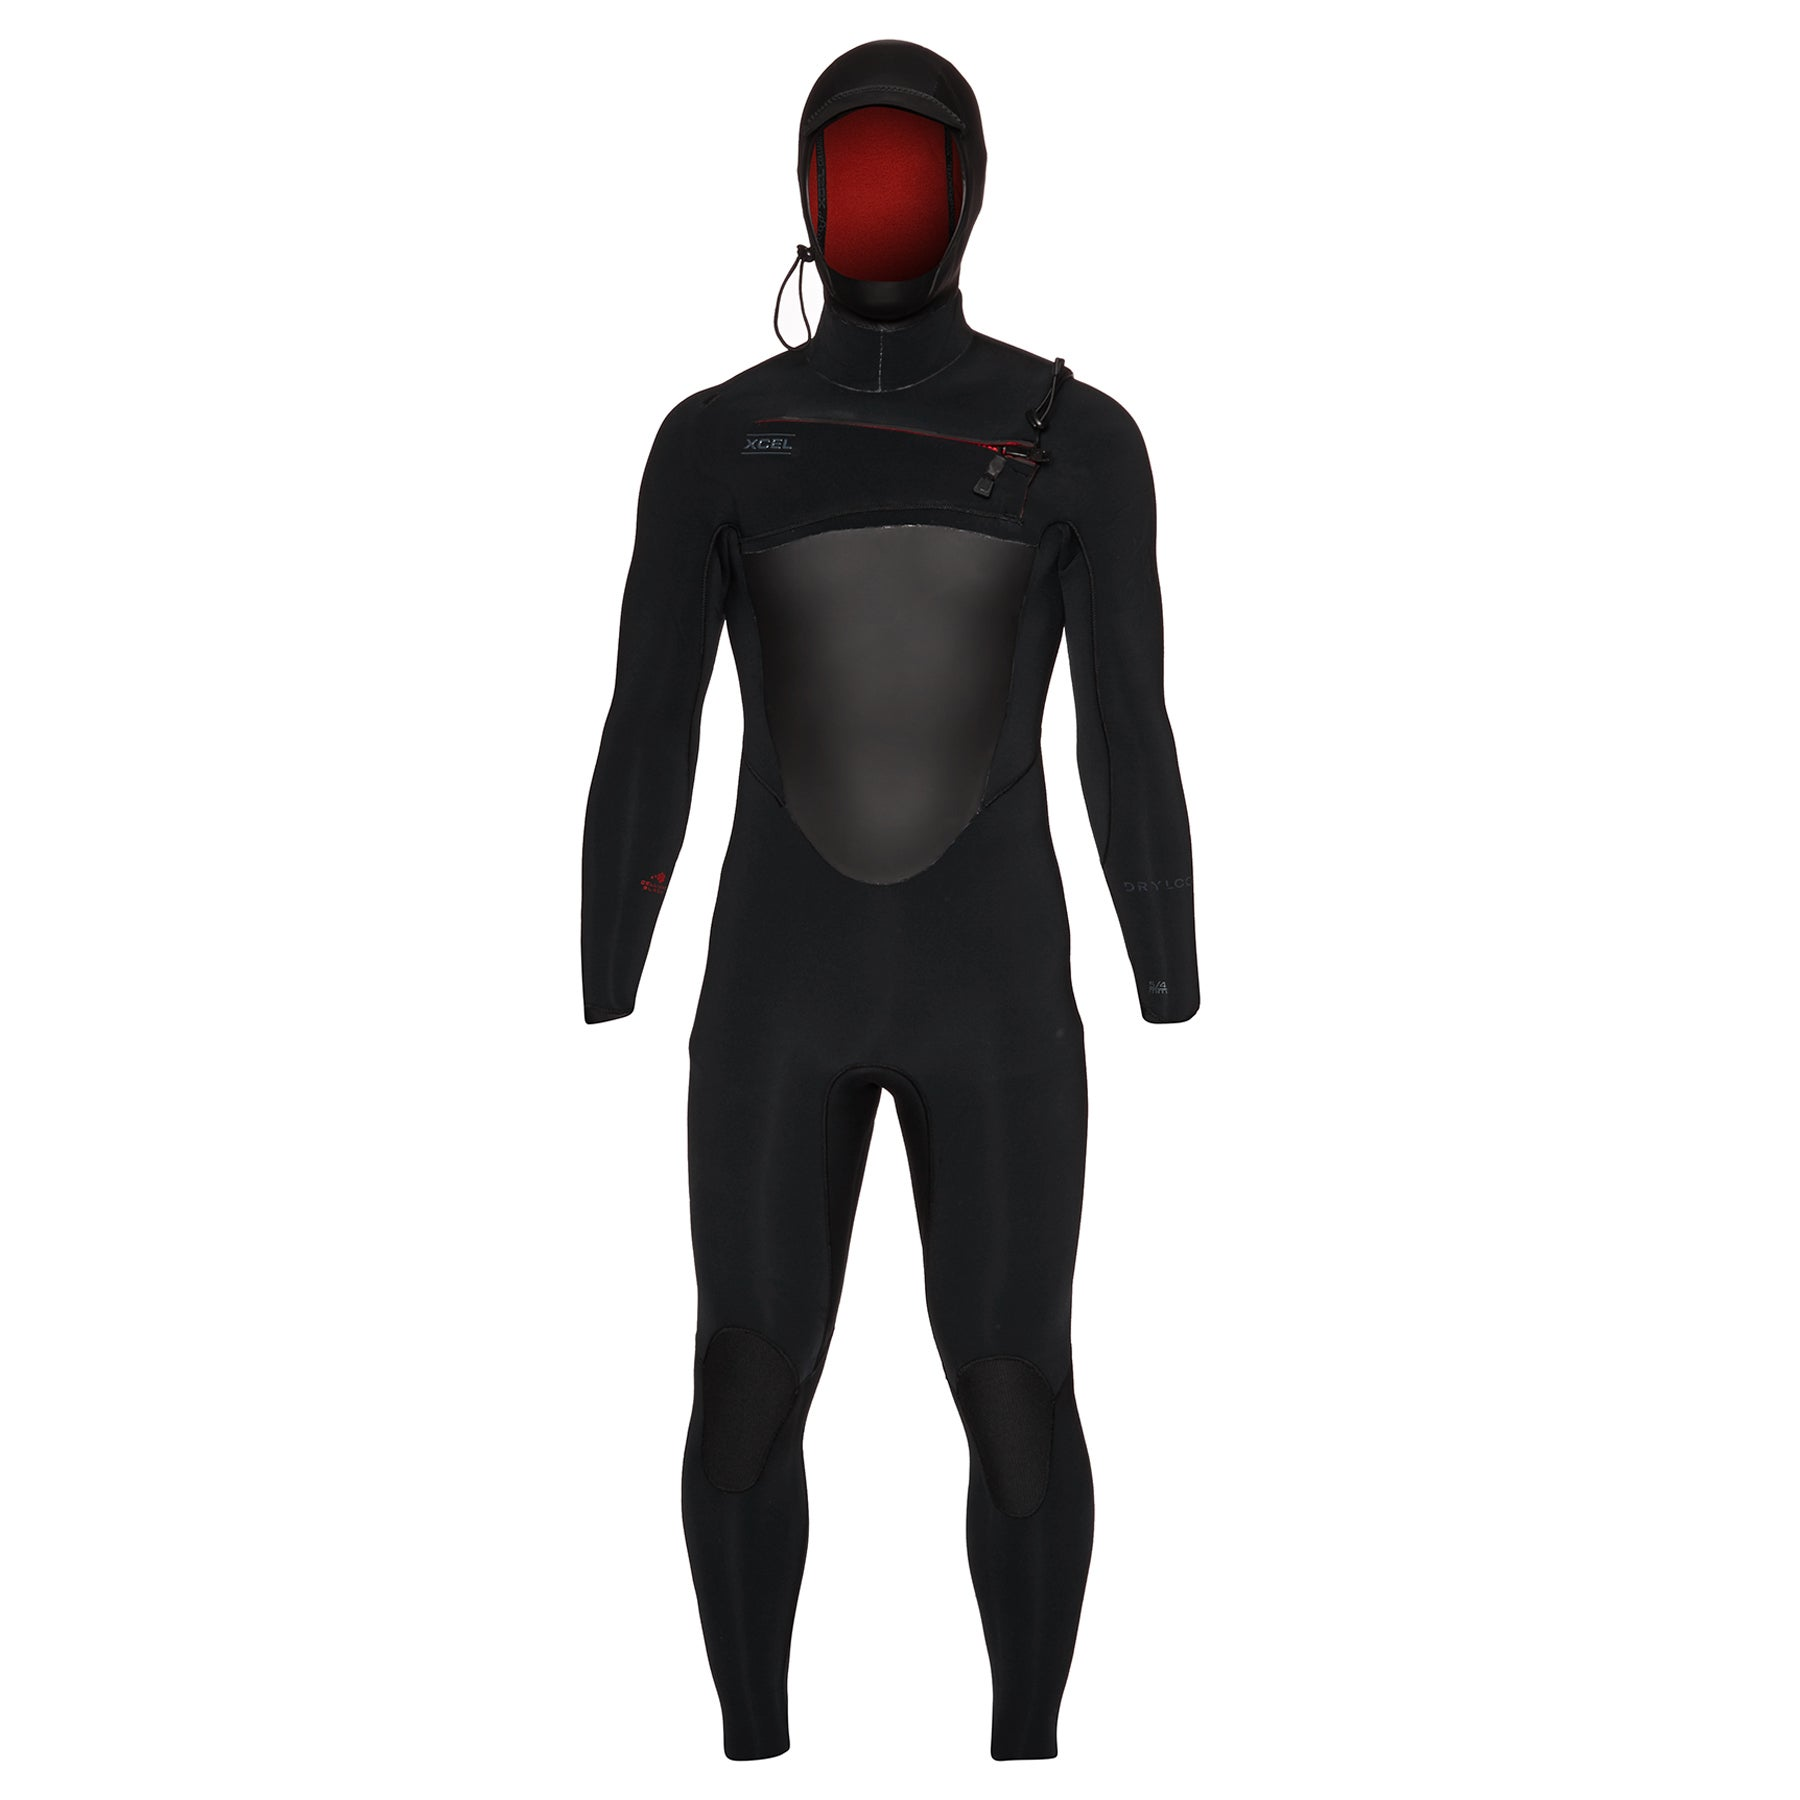 Xcel Drylock 5/4mm 2019 Chest Zip Hooded Wetsuit